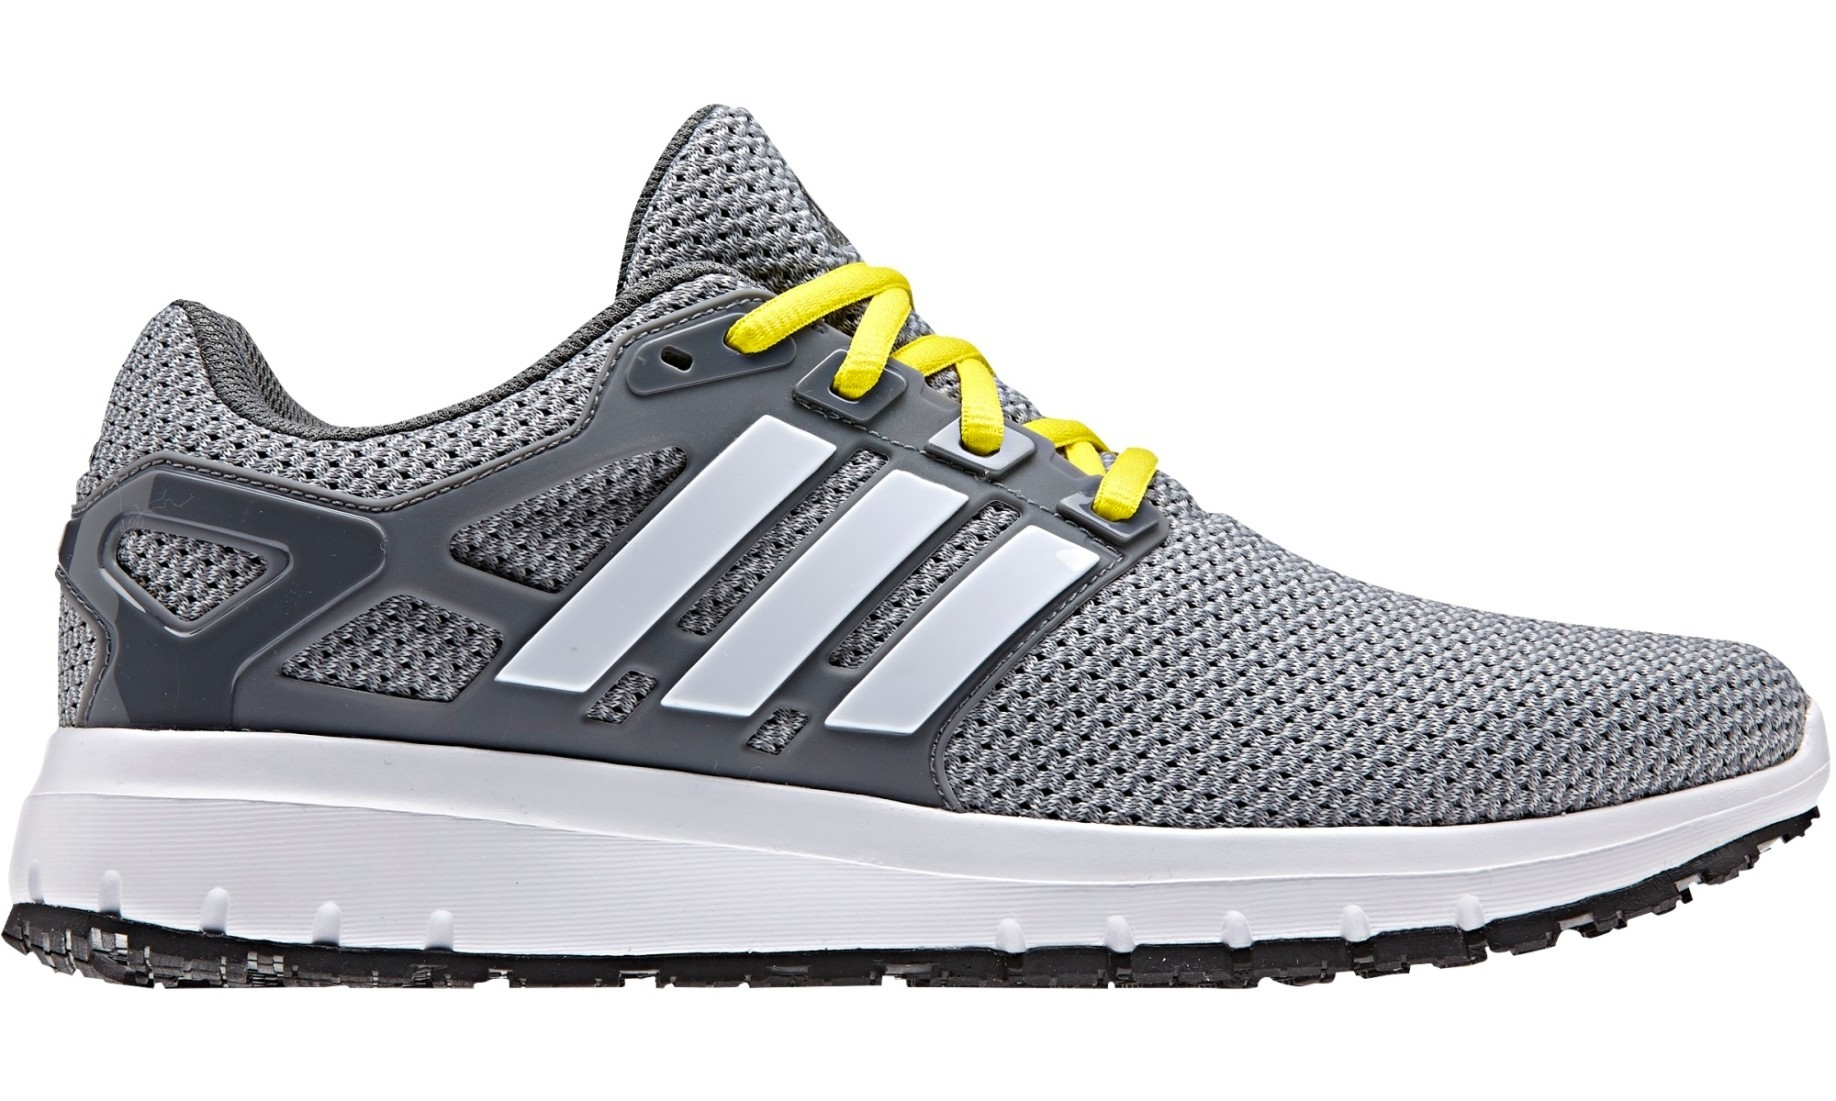 Mens Running Shoes Energy Cloud colore Grey Yellow - Adidas - SportIT.com a55eb28c331